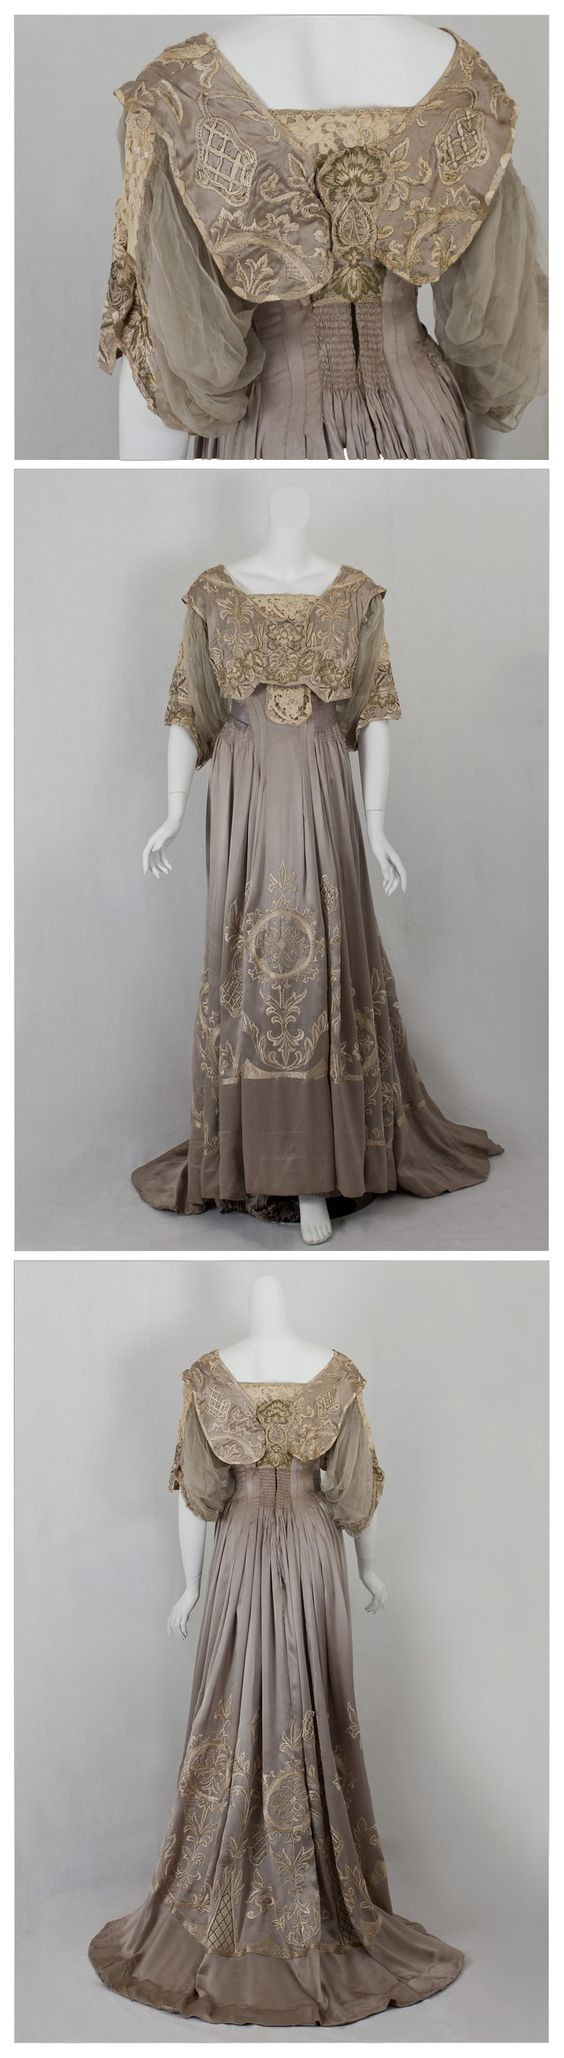 Callot Soeurs dinner dress, c.1905